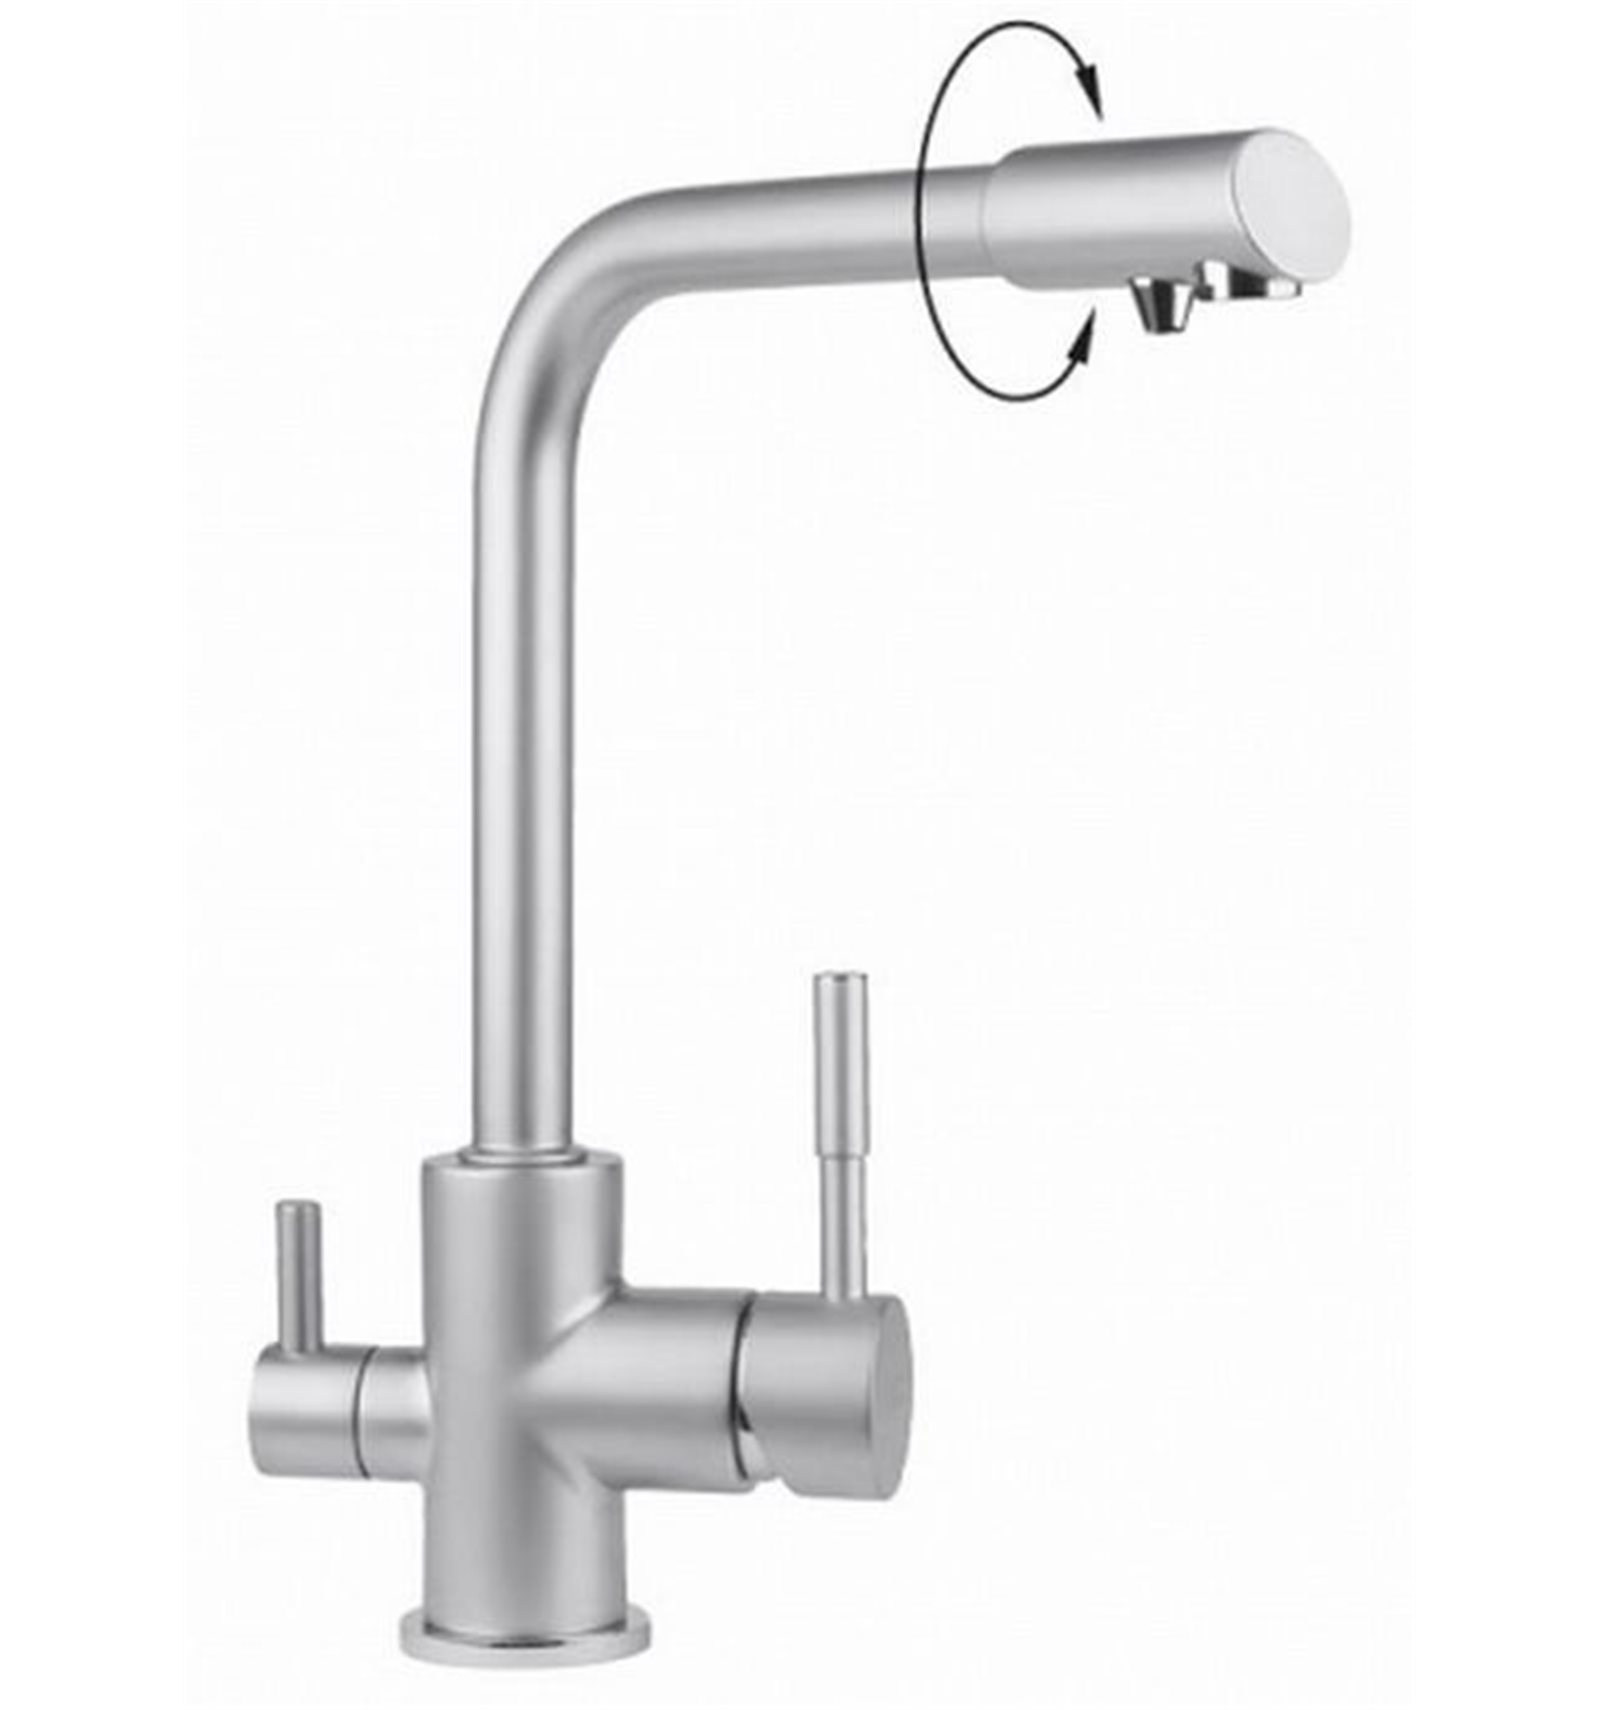 sink under steps watts one a make filter india cheap of tap great itch systems filtered for shower bath websites bathroom bad water you faucets premier buying pure faucet